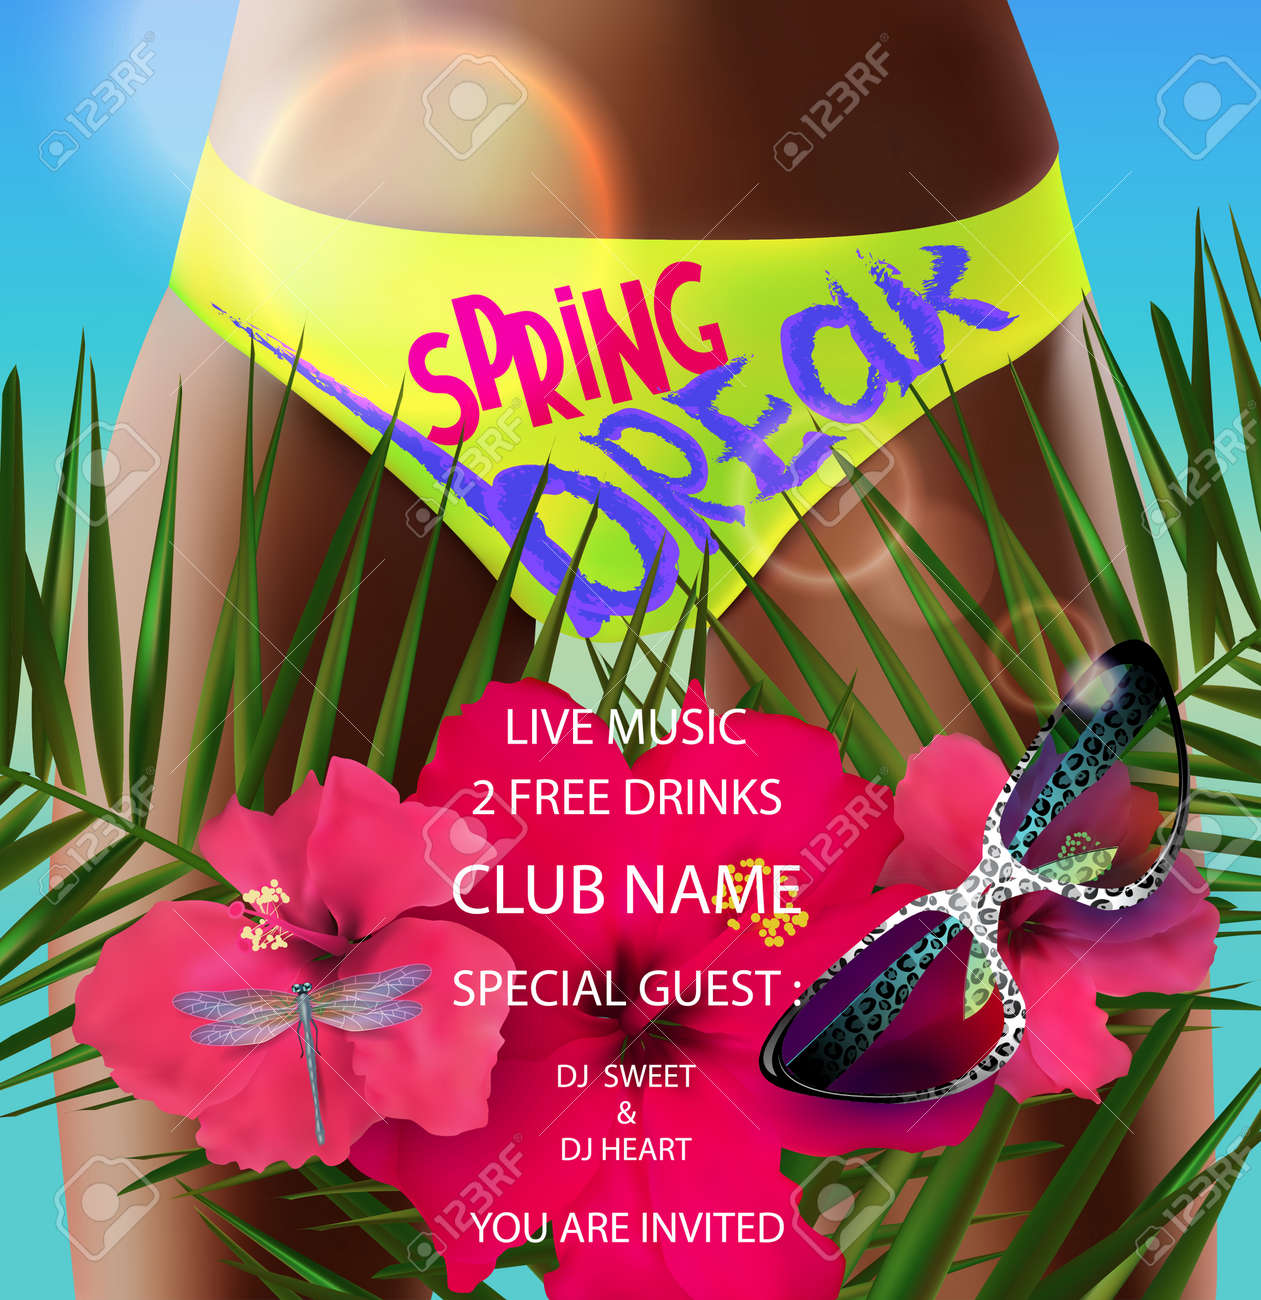 Spring Break Poster With Palm Tree Branches Flowers And Girl